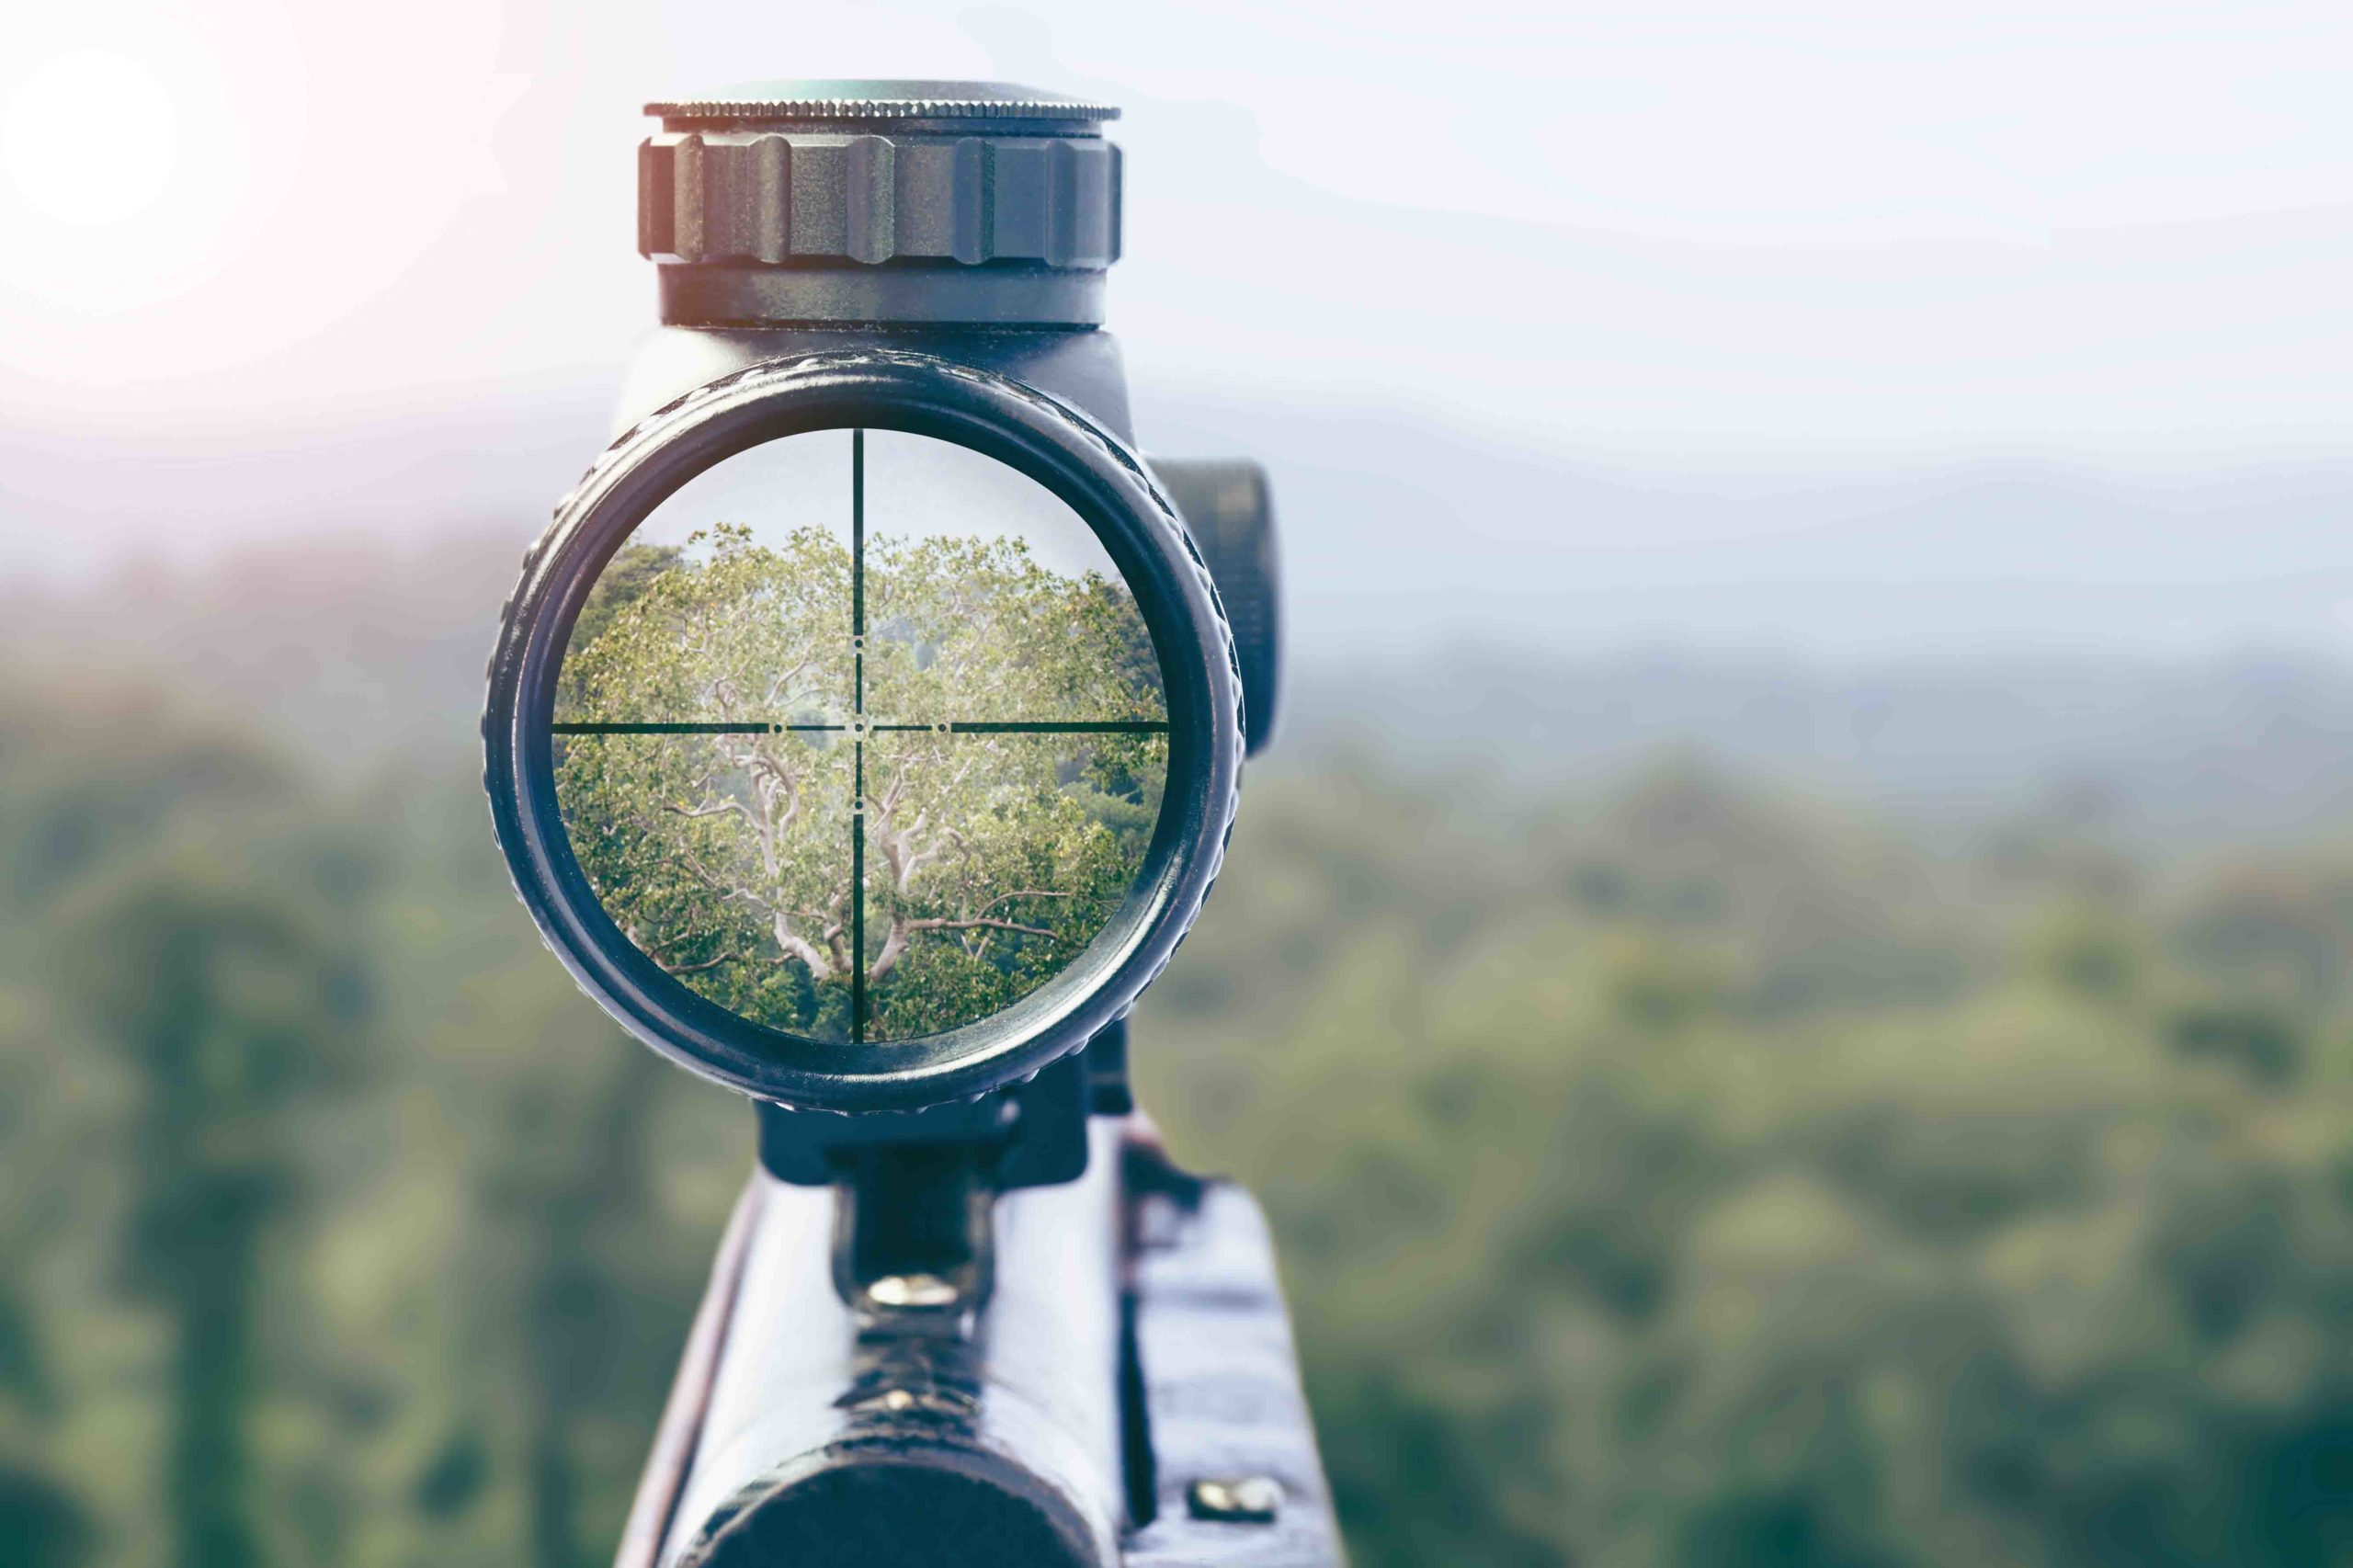 rifle target view on Natural Background. Image of a rifle scope sight used for aiming with a weapon